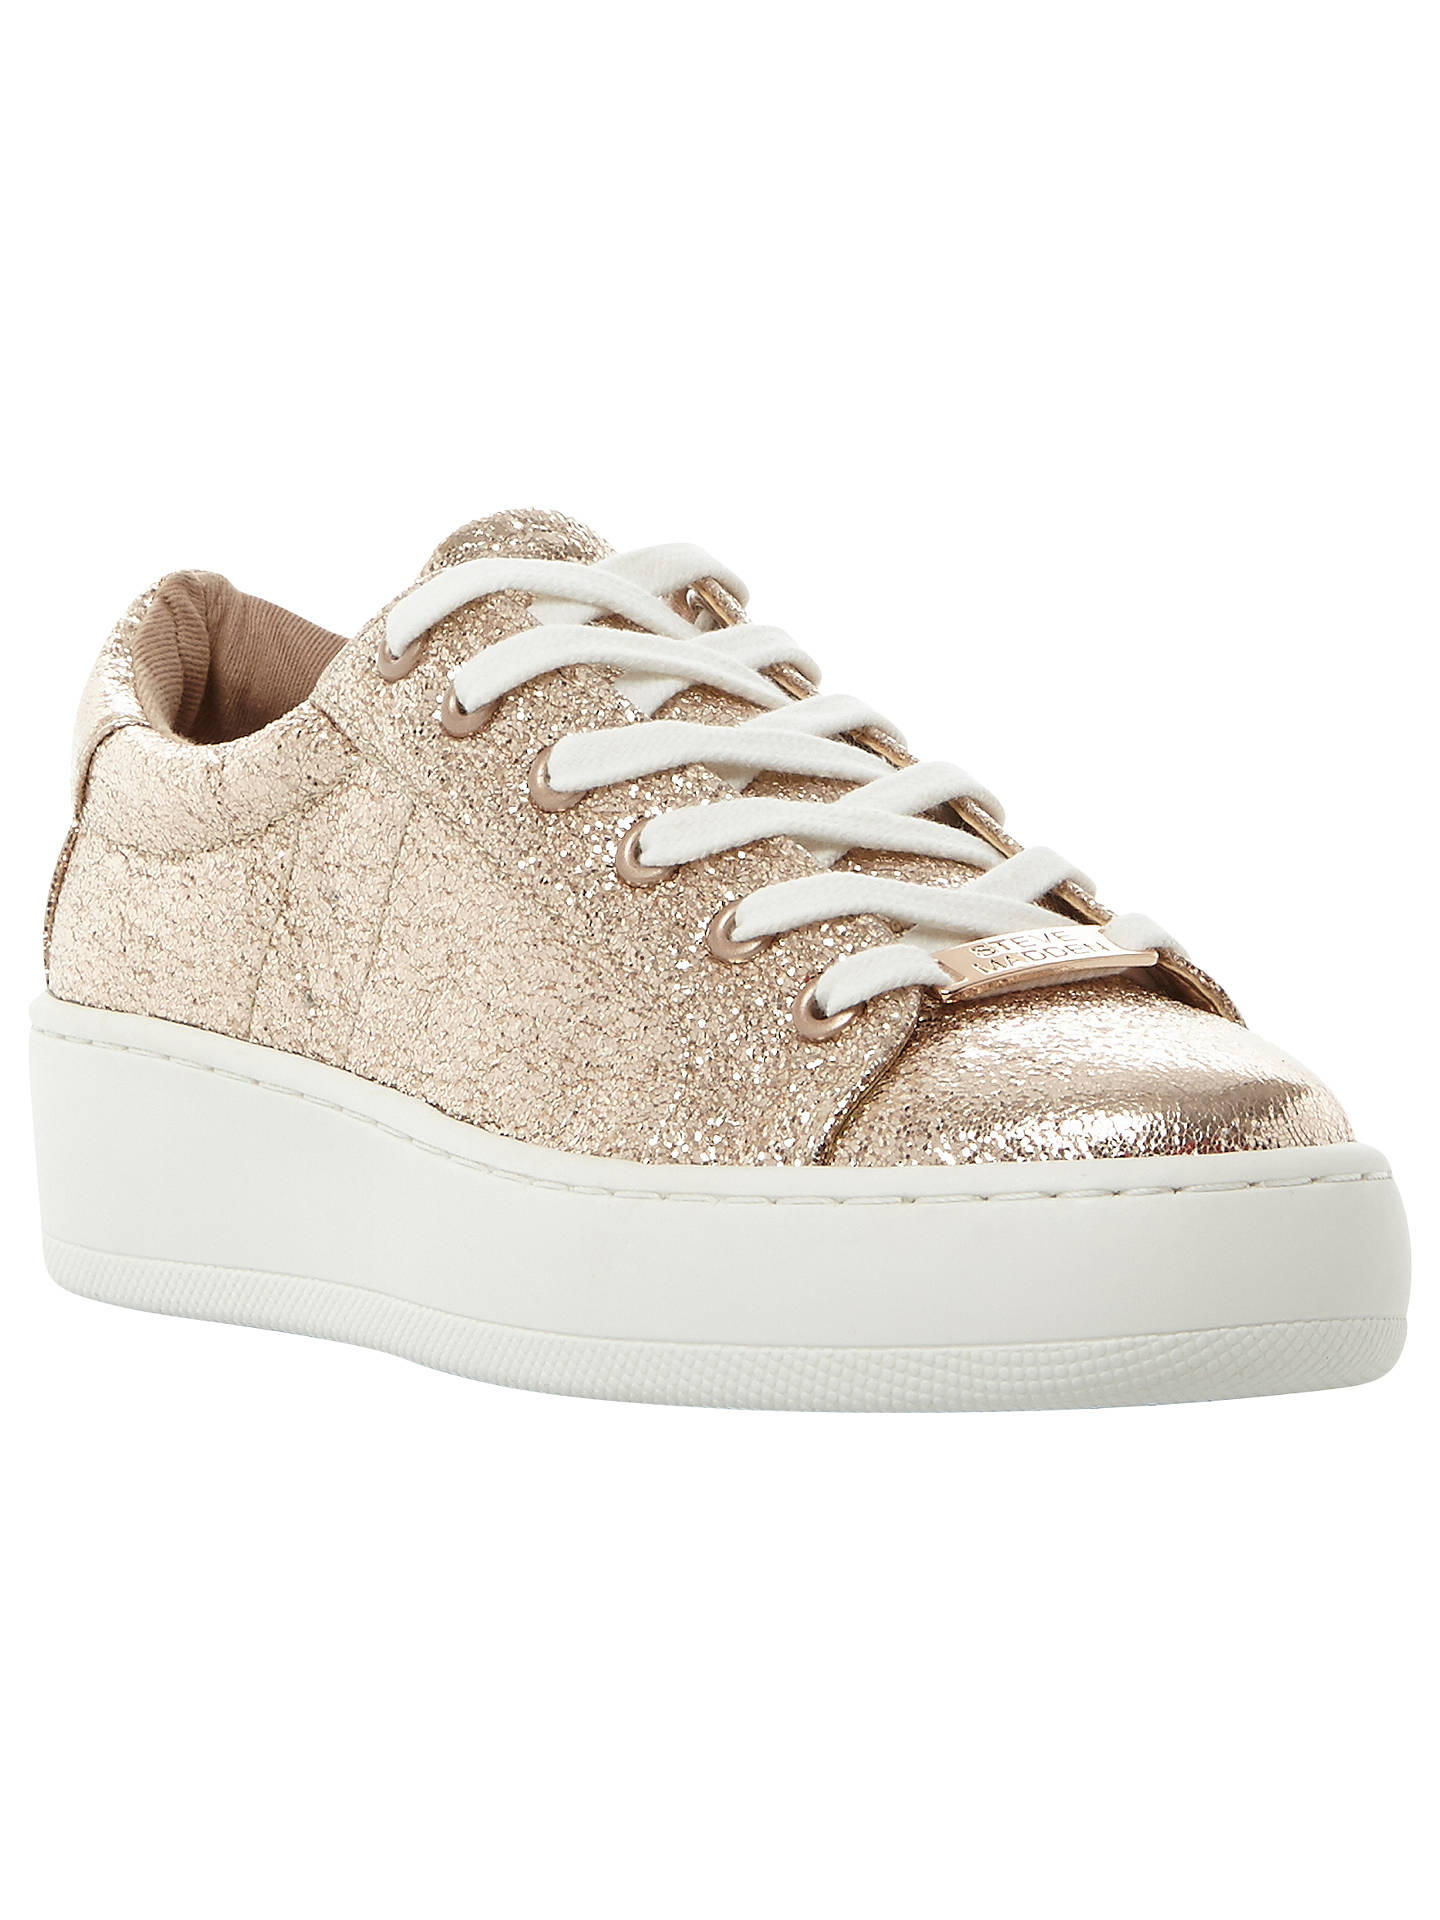 732b17661dd Buy Steve Madden Bertie-C Lace Up Trainers